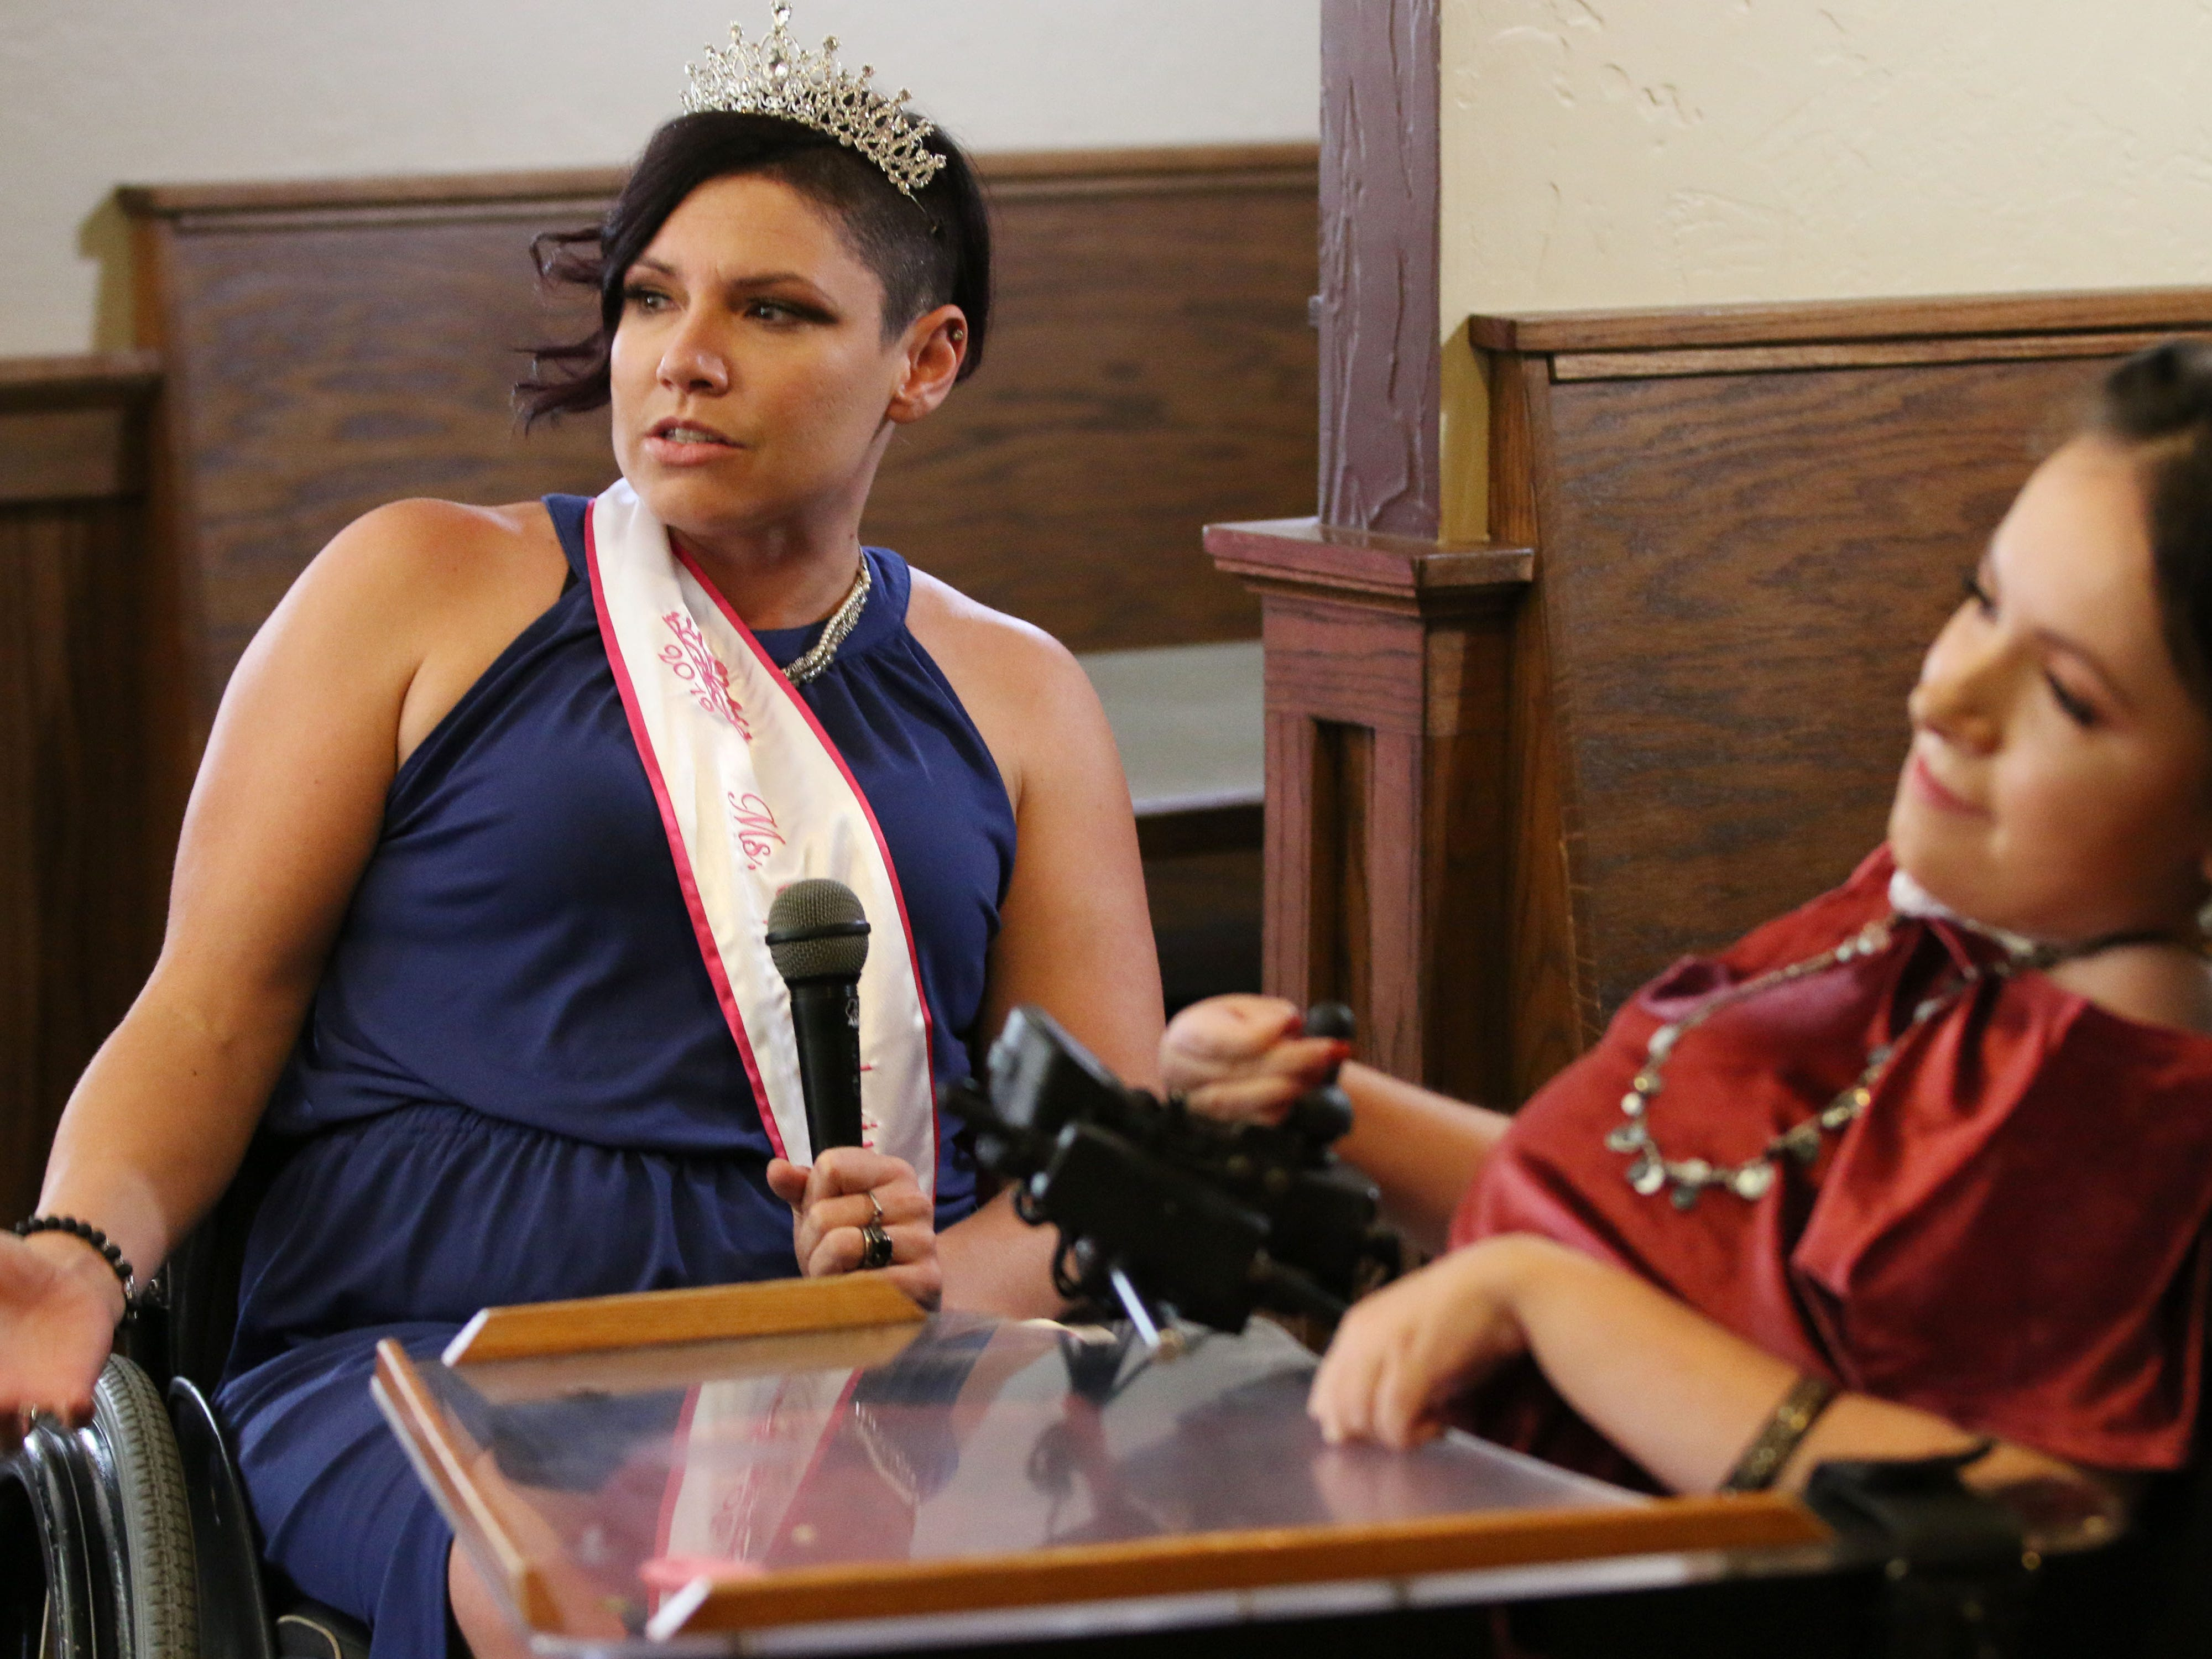 Autumn Neugent of Madison was named Ms Wheelchair Wisconsin, Saturday, November 3, 2018, in Plymouth, Wis. Neugent, left, was giving comments following her crowning next to runner up Amber Schmidt, of Merrill, Wis.